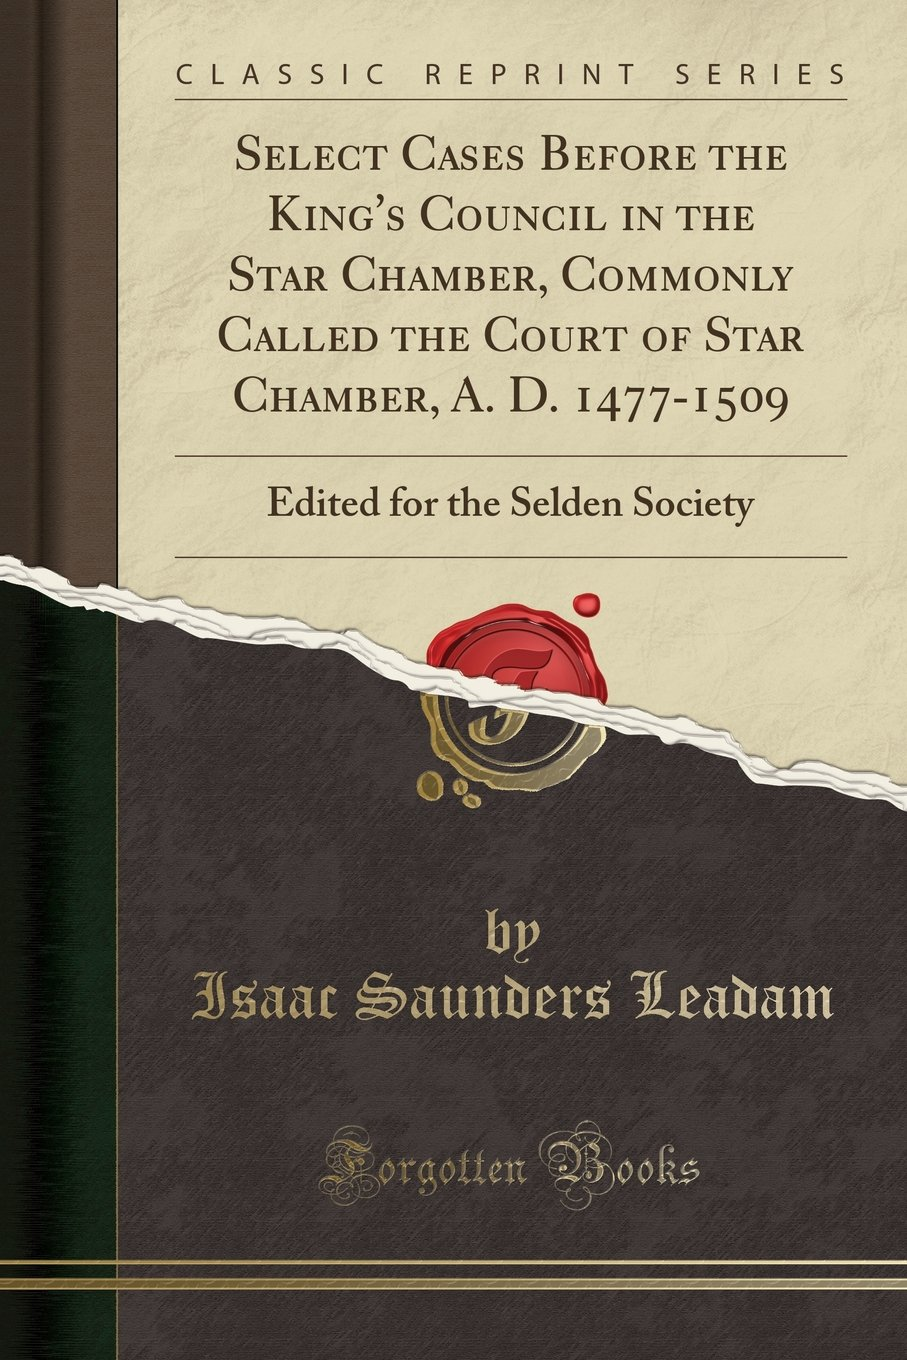 Select Cases Before the King's Council in the Star Chamber, Commonly Called the Court of Star Chamber, A. D. 1477-1509: Edited for the Selden Society (Classic Reprint) pdf